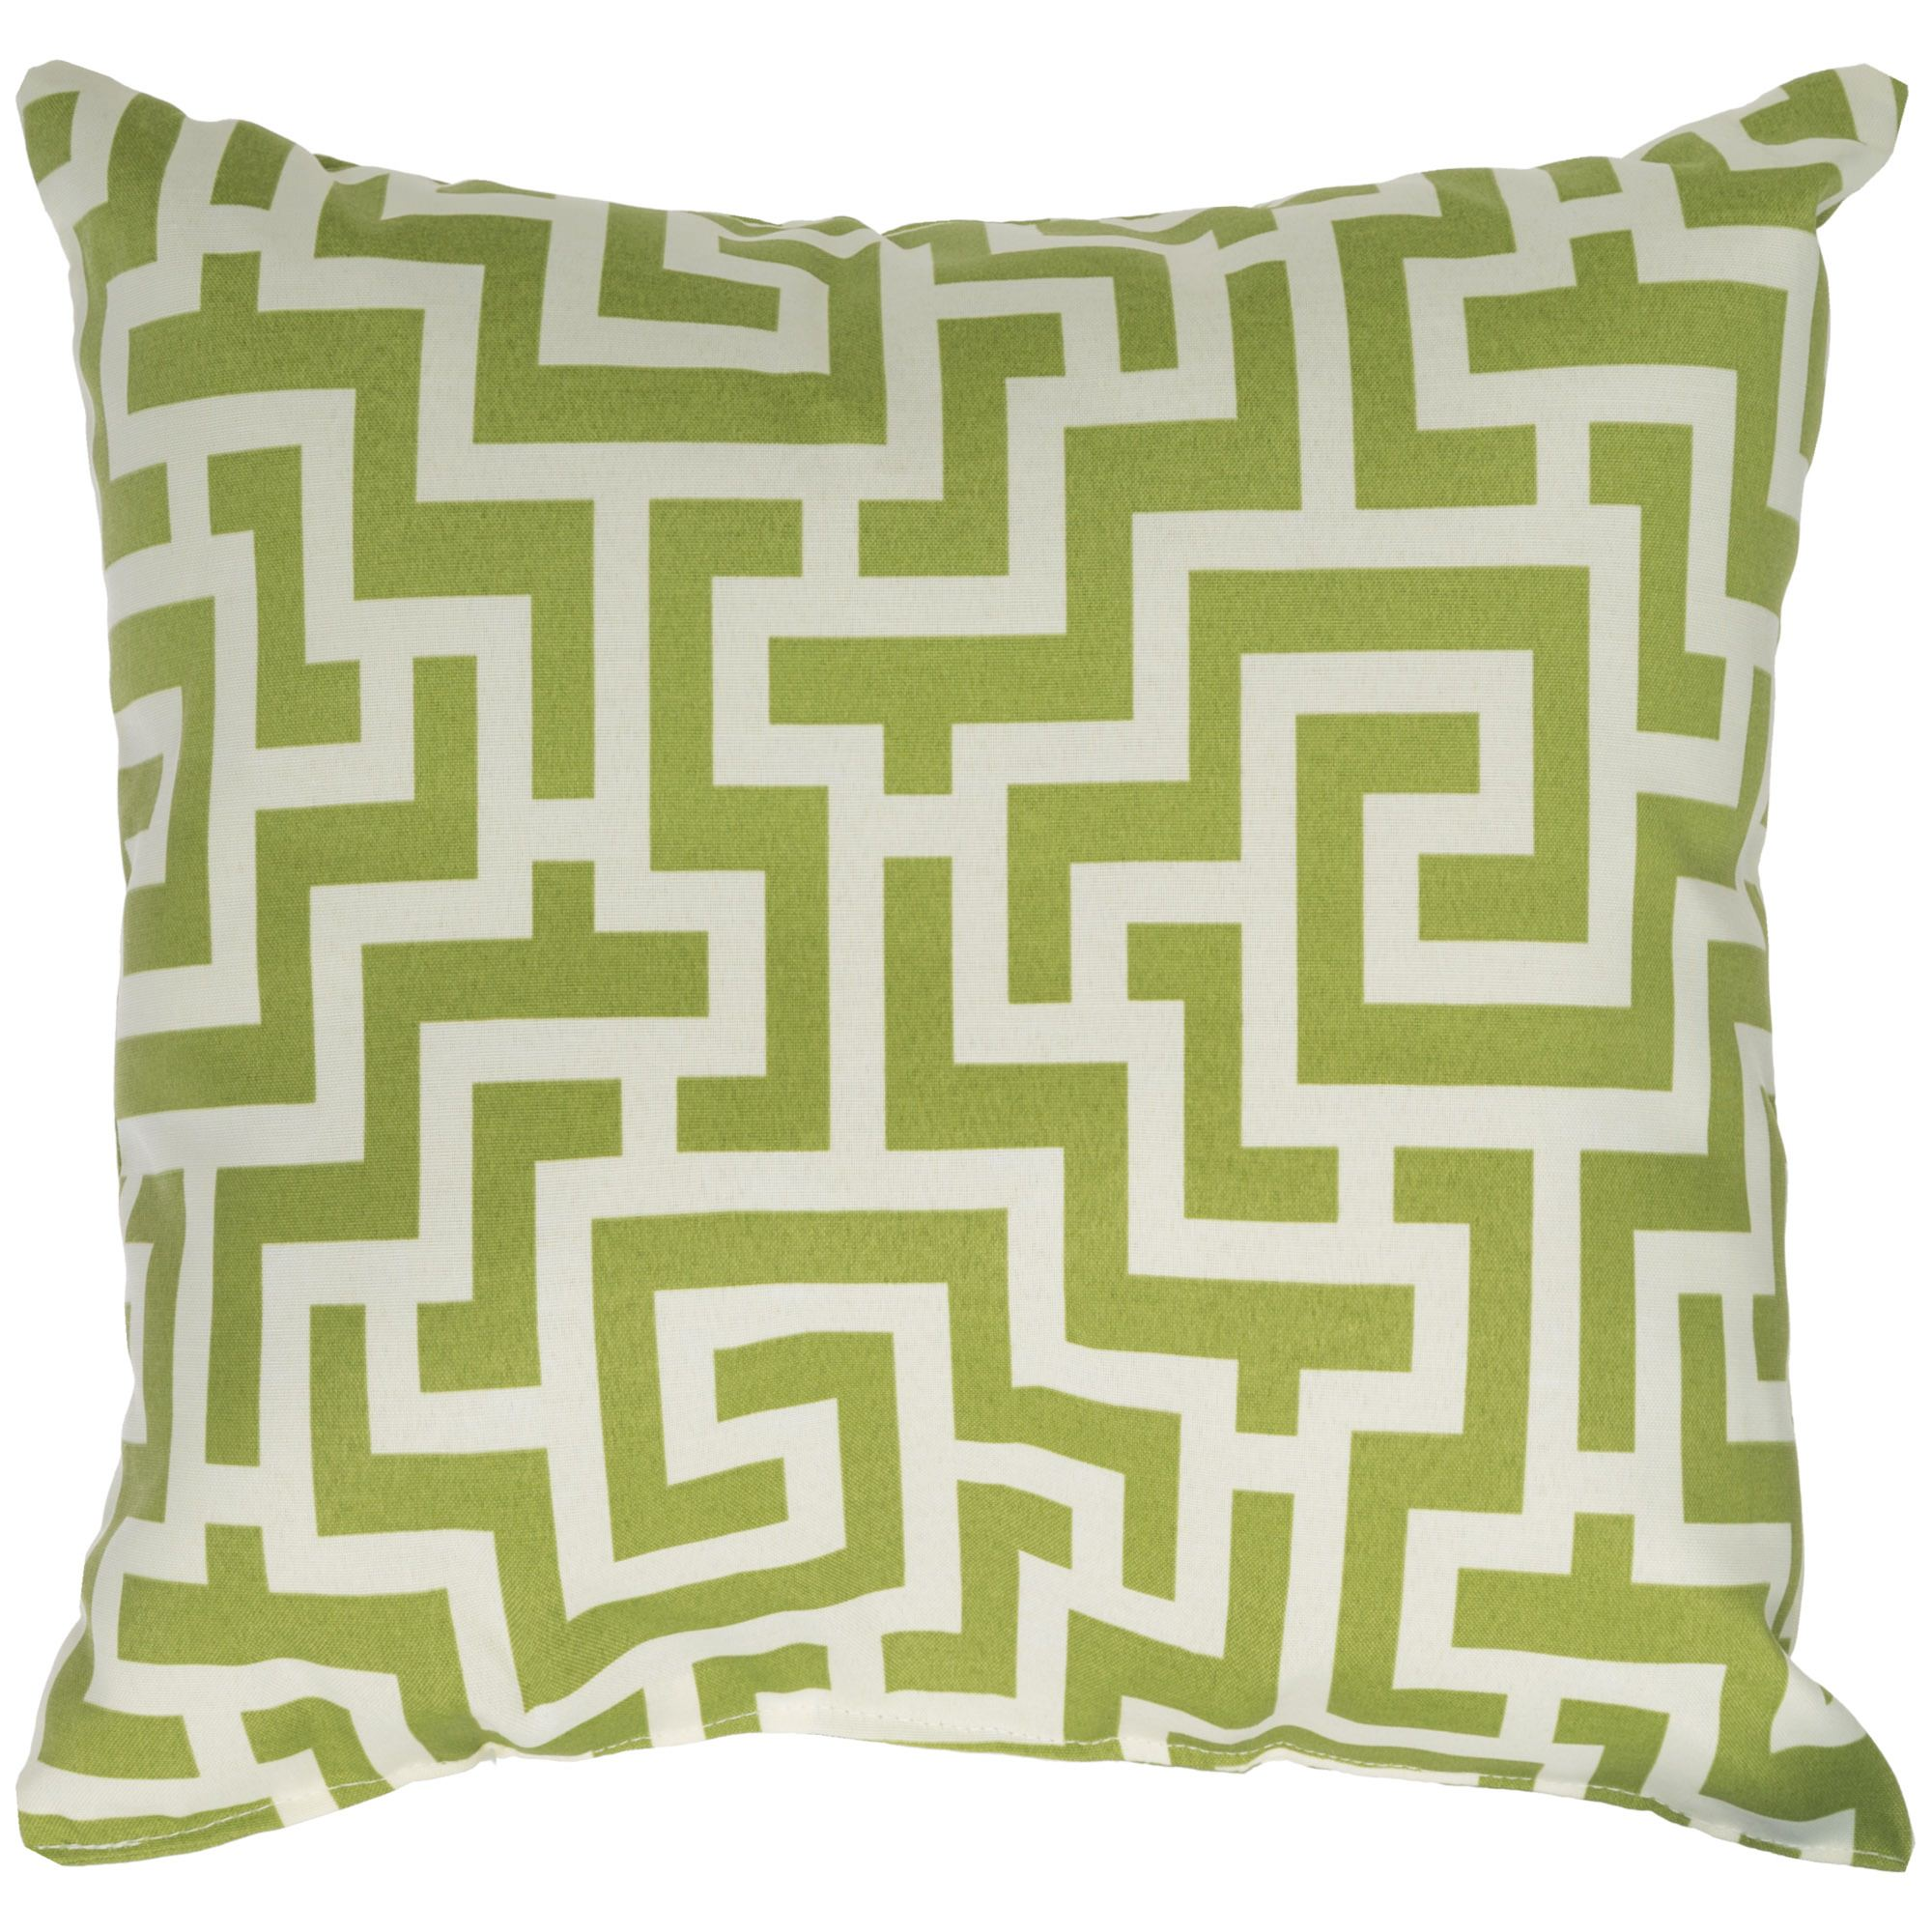 Keyes Decorative Pillow : Kiwi Green Keyes Outdoor Pillow 18 x 18 on Sale DFOHome